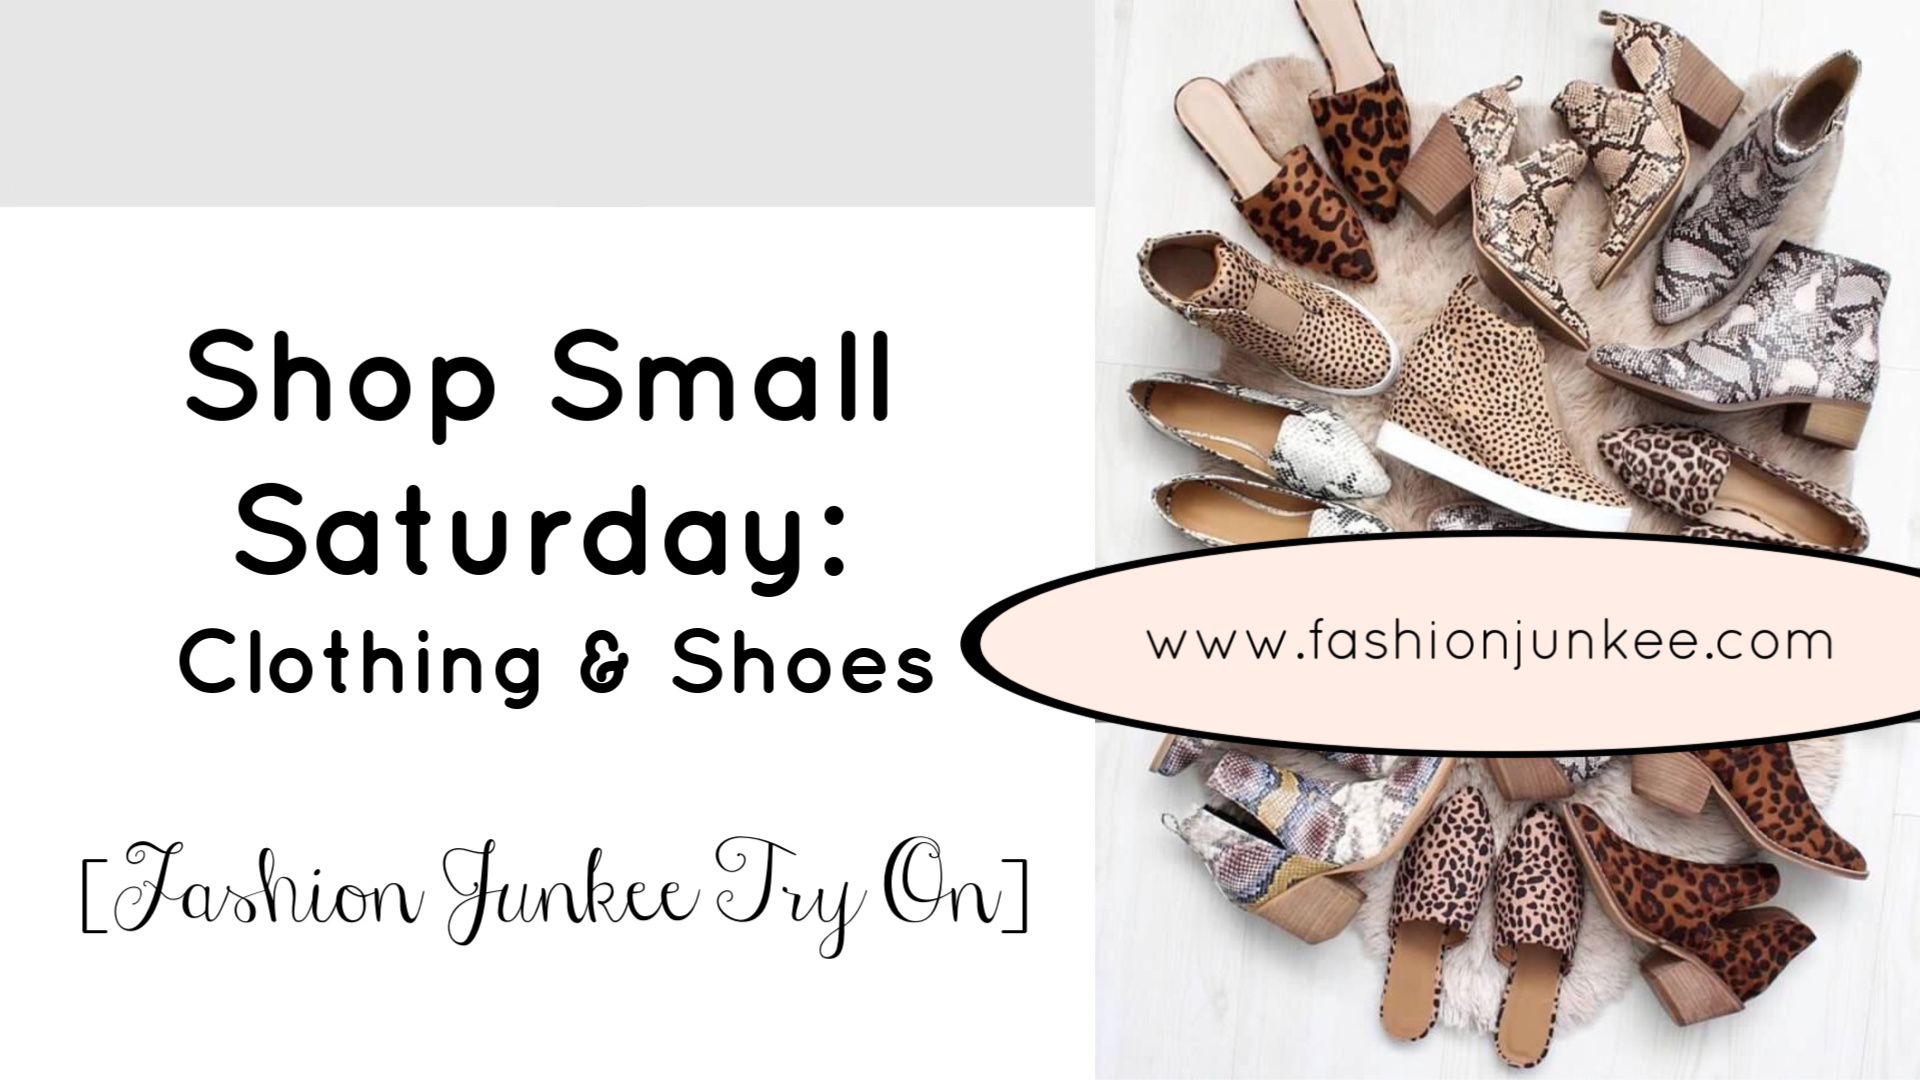 Shop Small Saturday | Shoe Lover | Fashion Junkee | Teacherfashionista | Jules